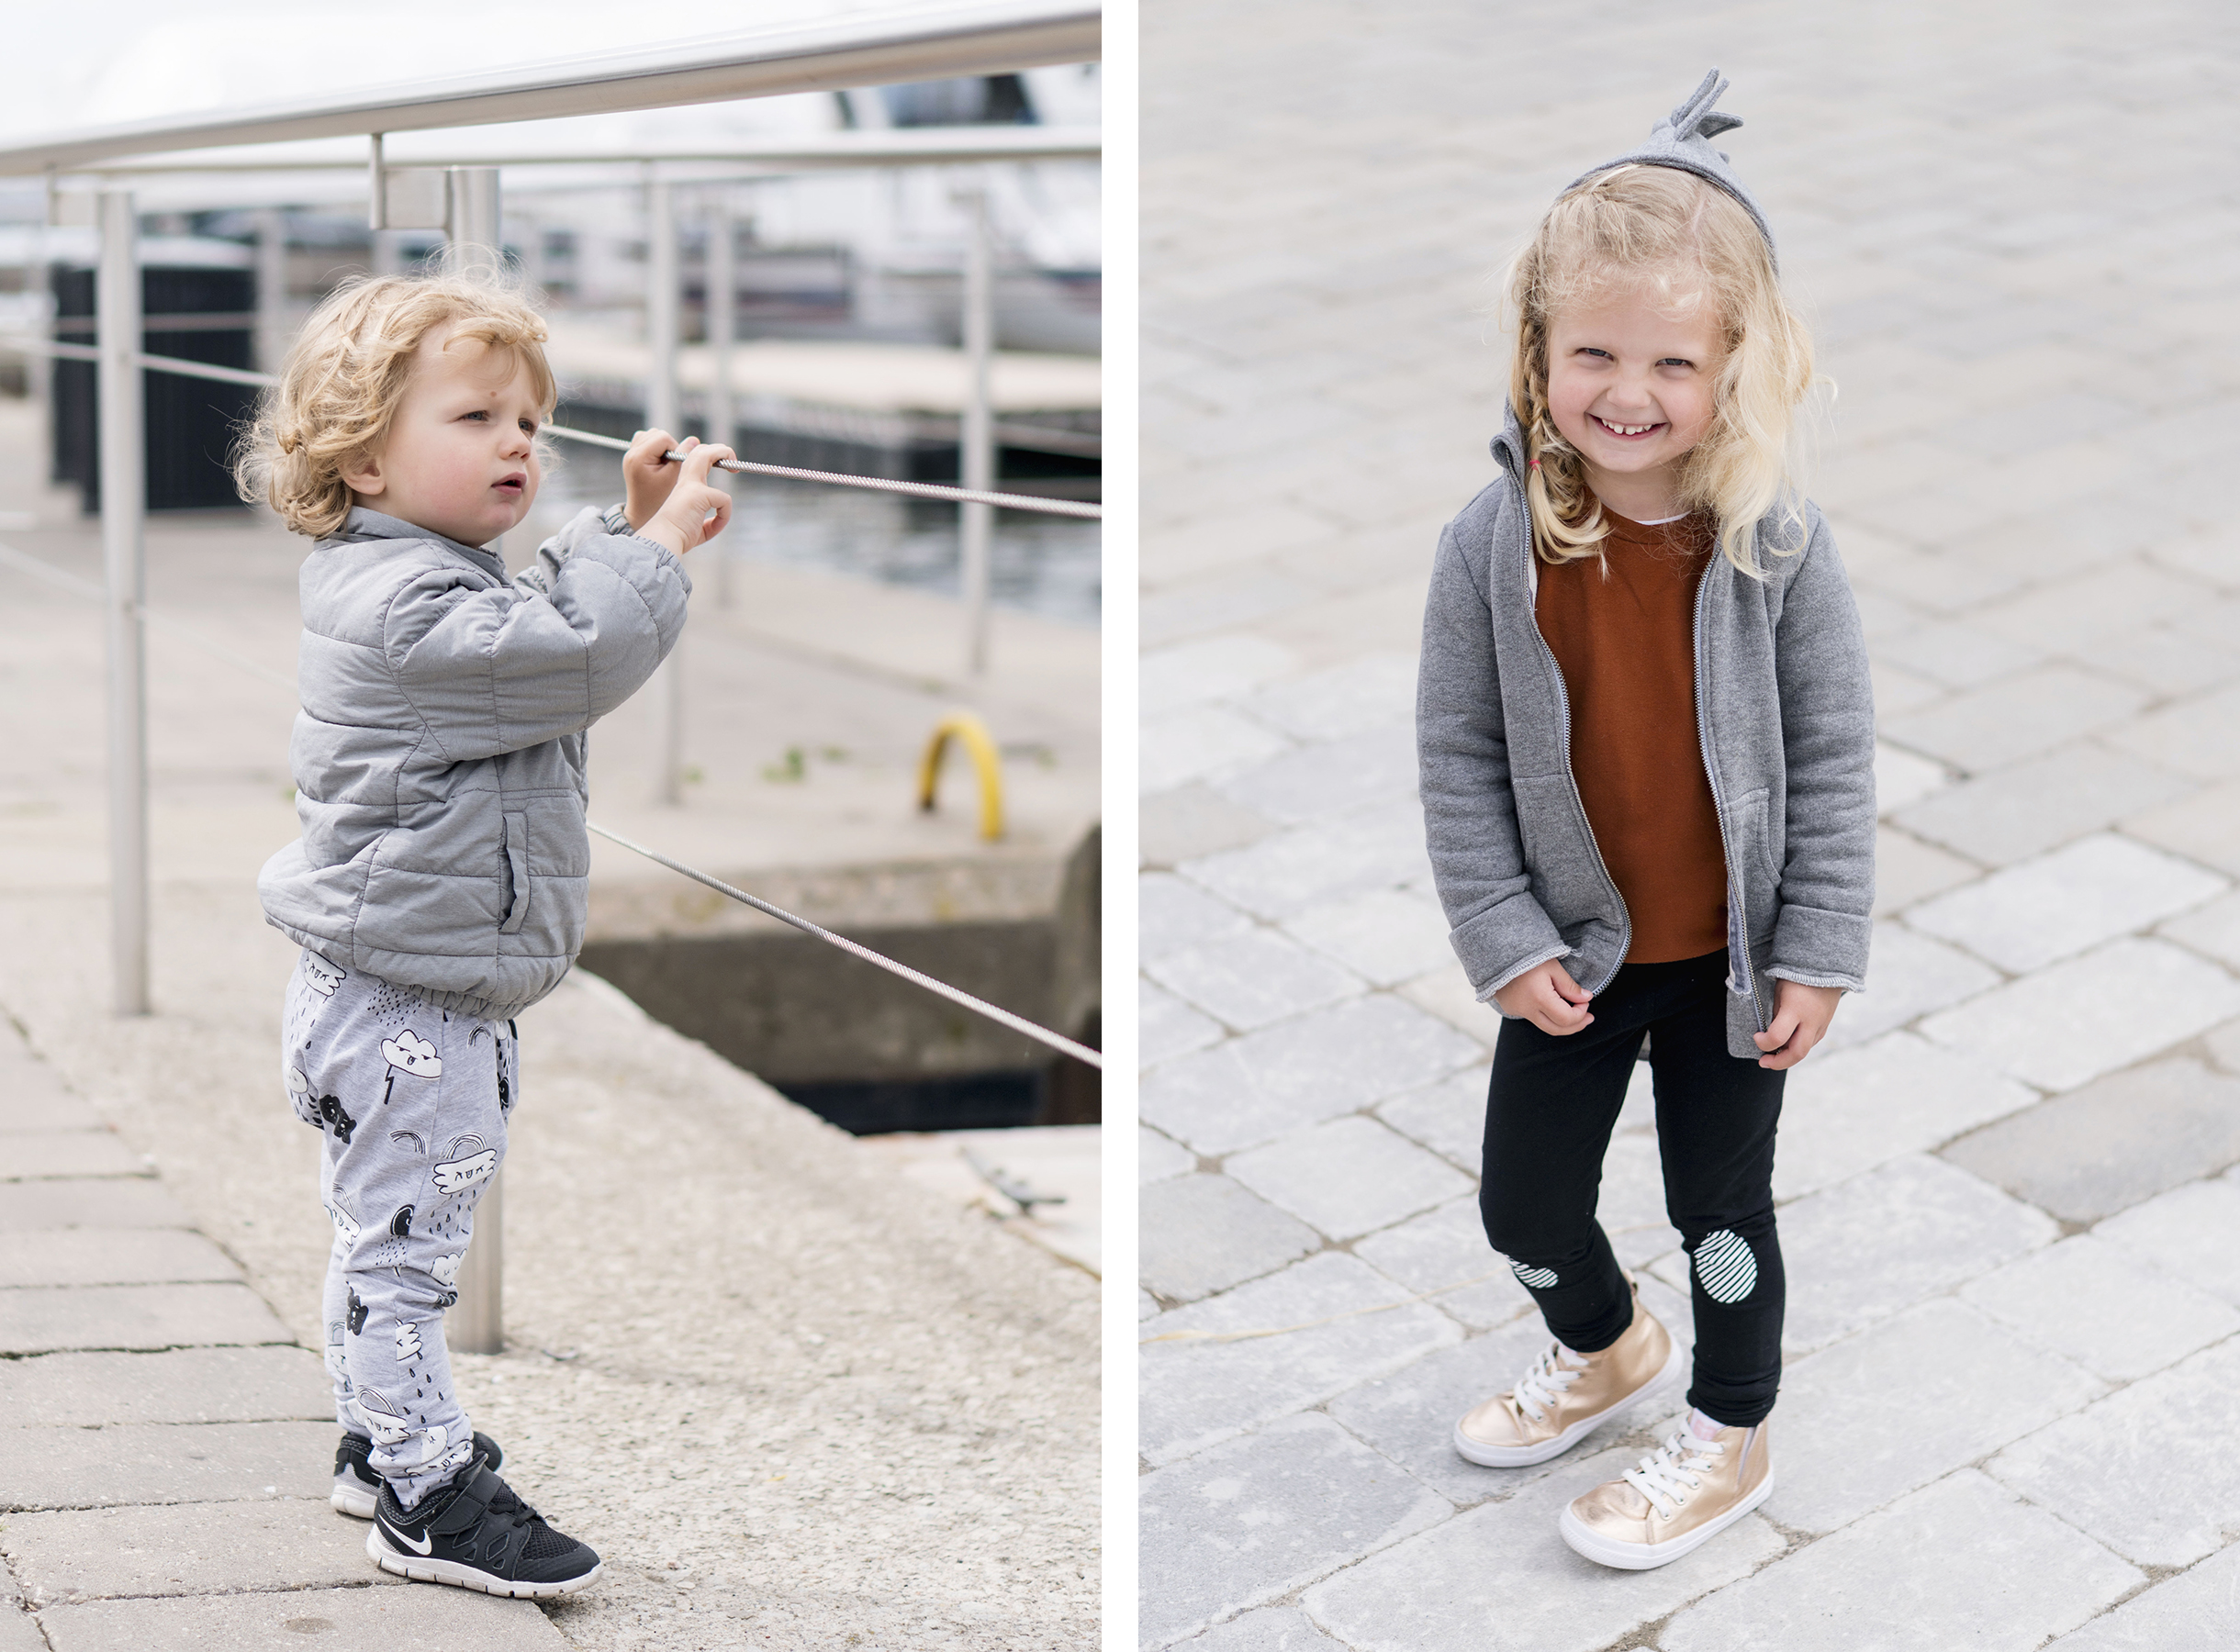 Kids' Snow Boots - Find the Best Winter Boots for Kids